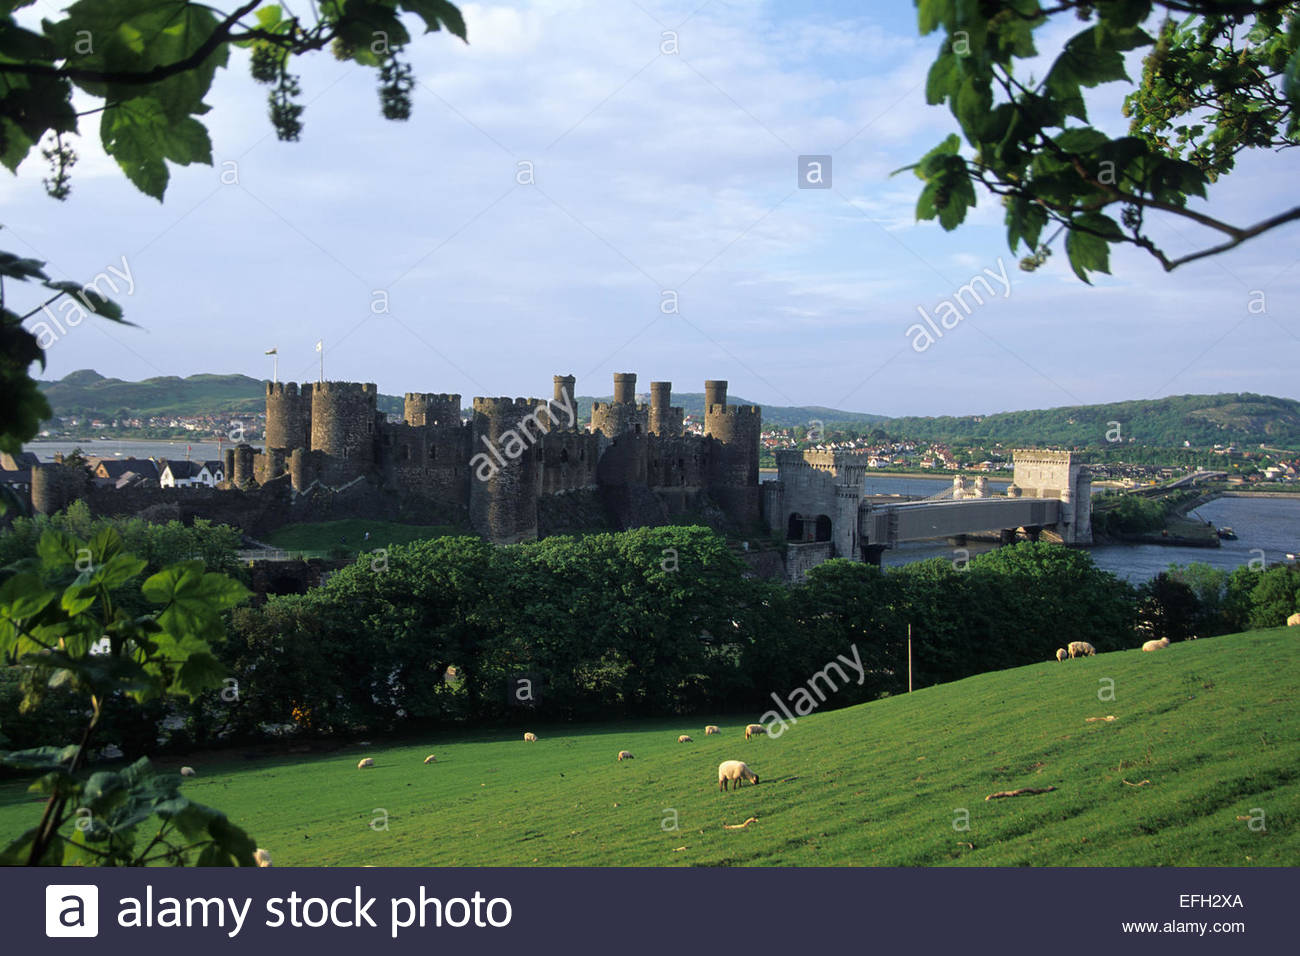 Conwy castle, Wales - Stock Image